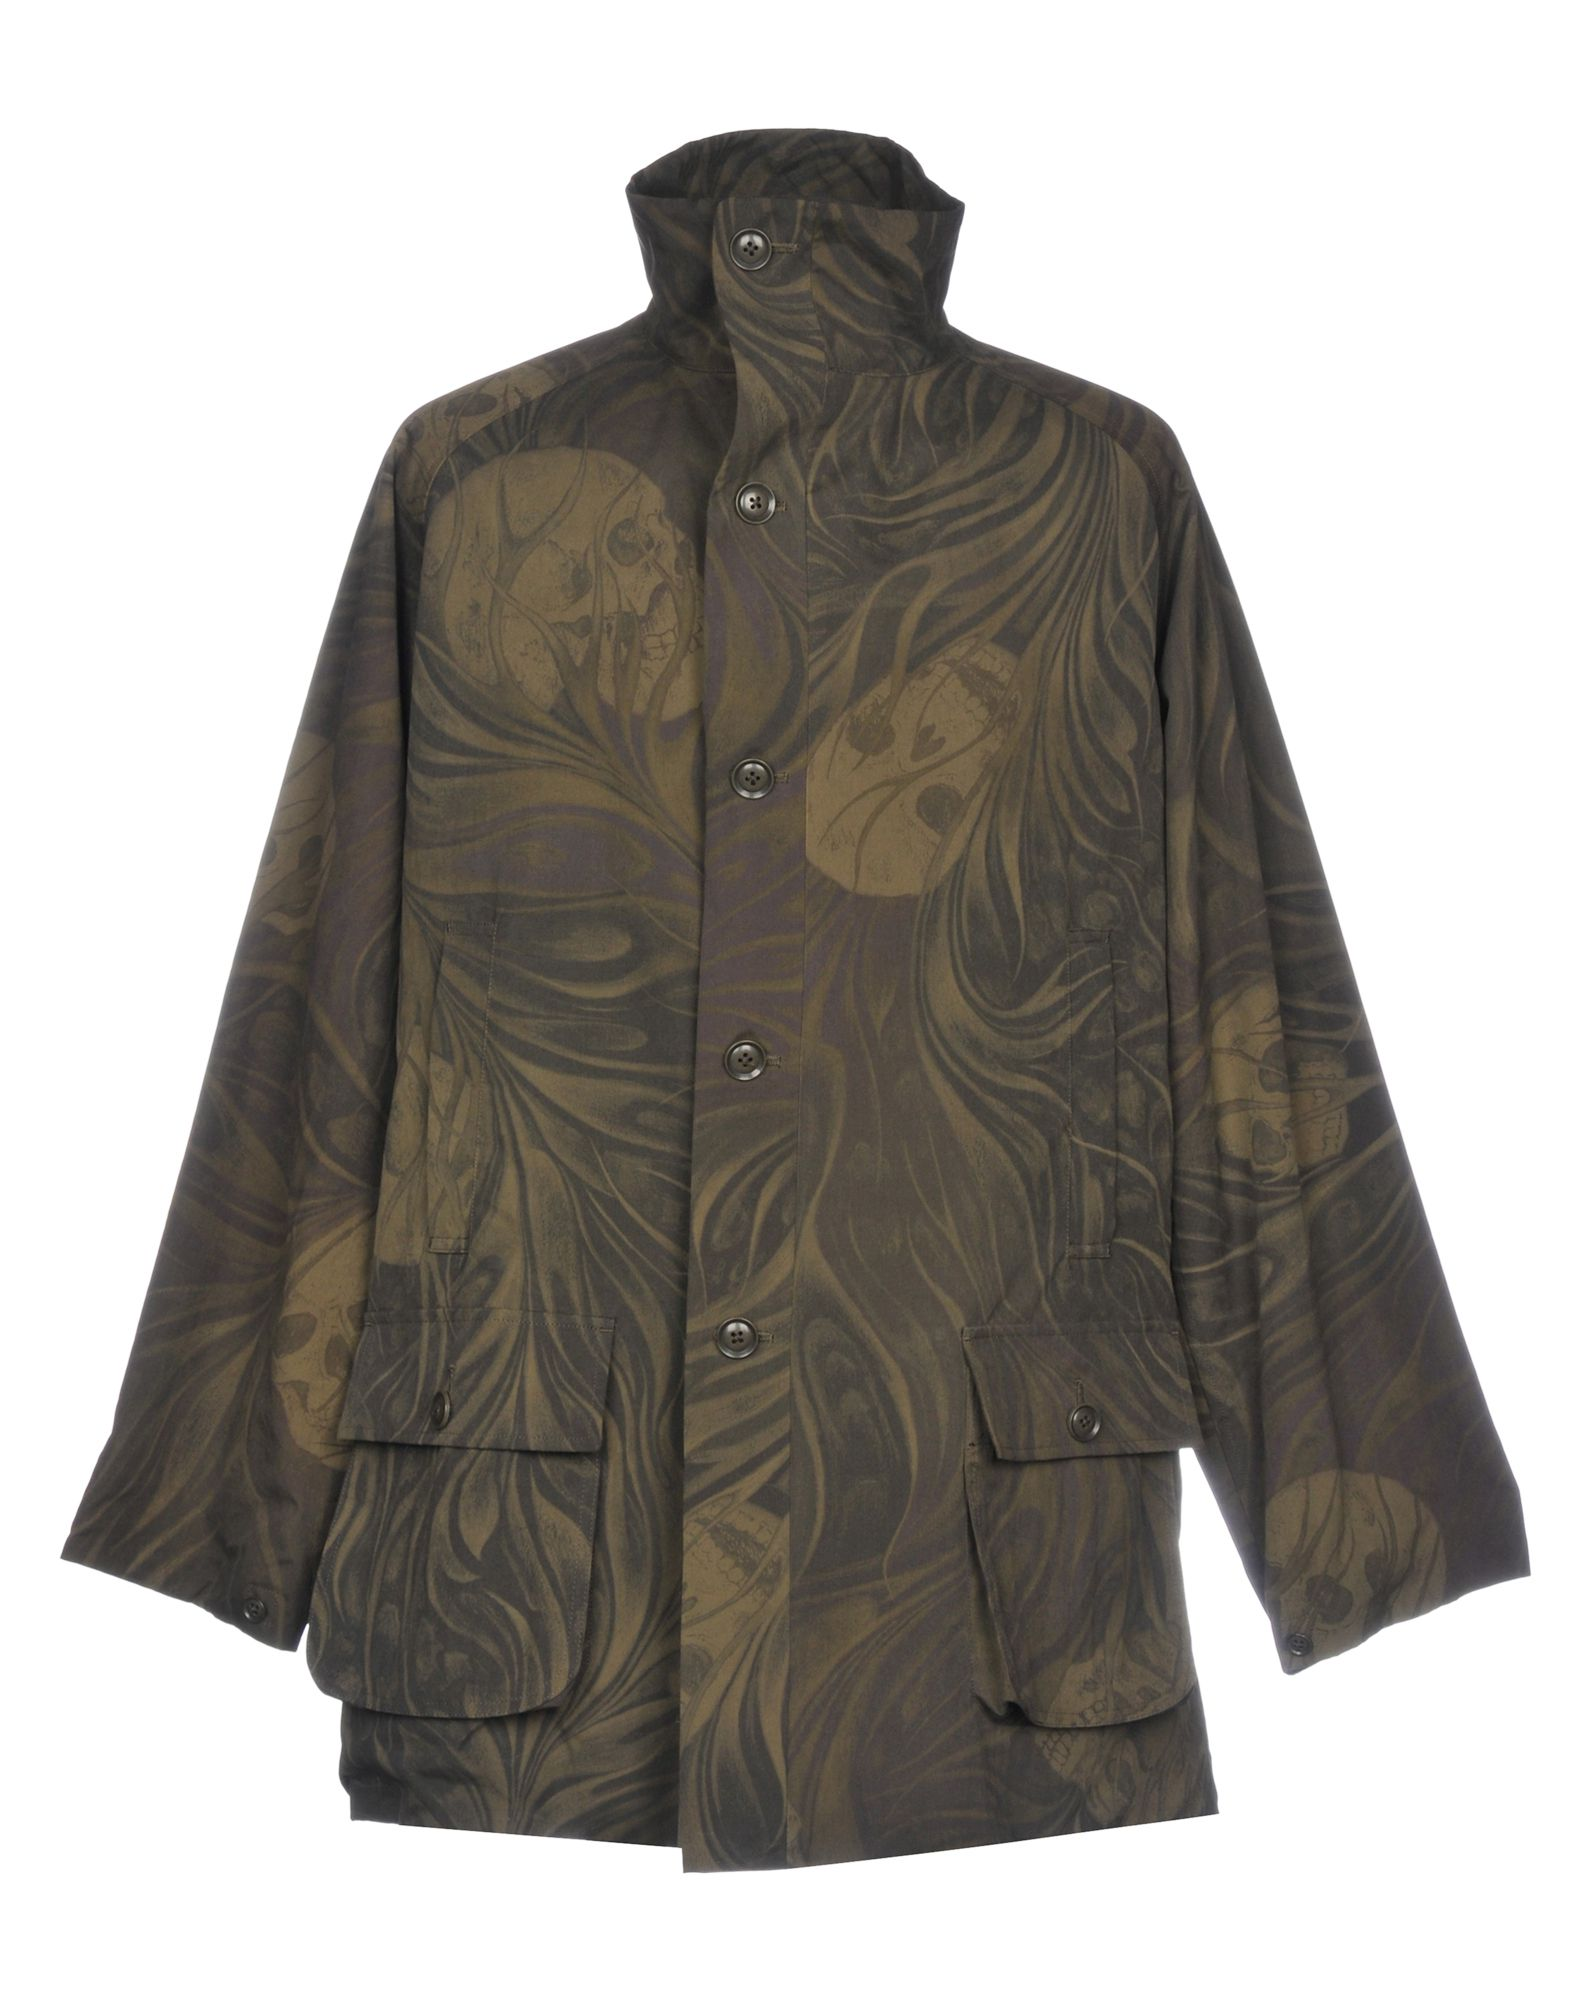 YOHJI YAMAMOTO POUR HOMME Full-Length Jacket in Military Green